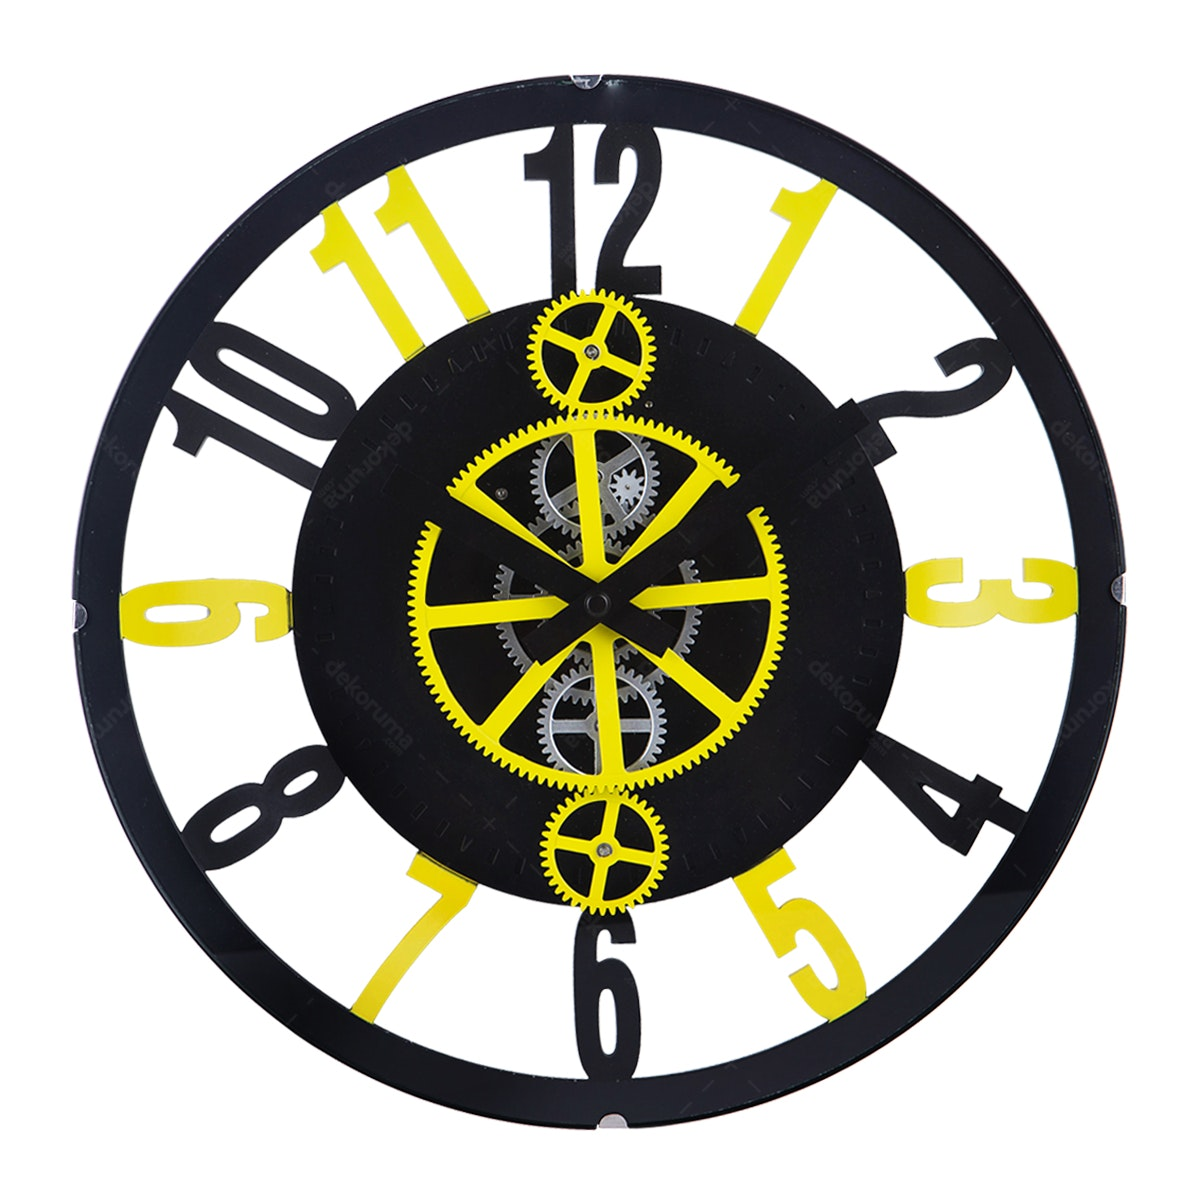 Gearclock Plastic Gear Wall Clock Black Yellow